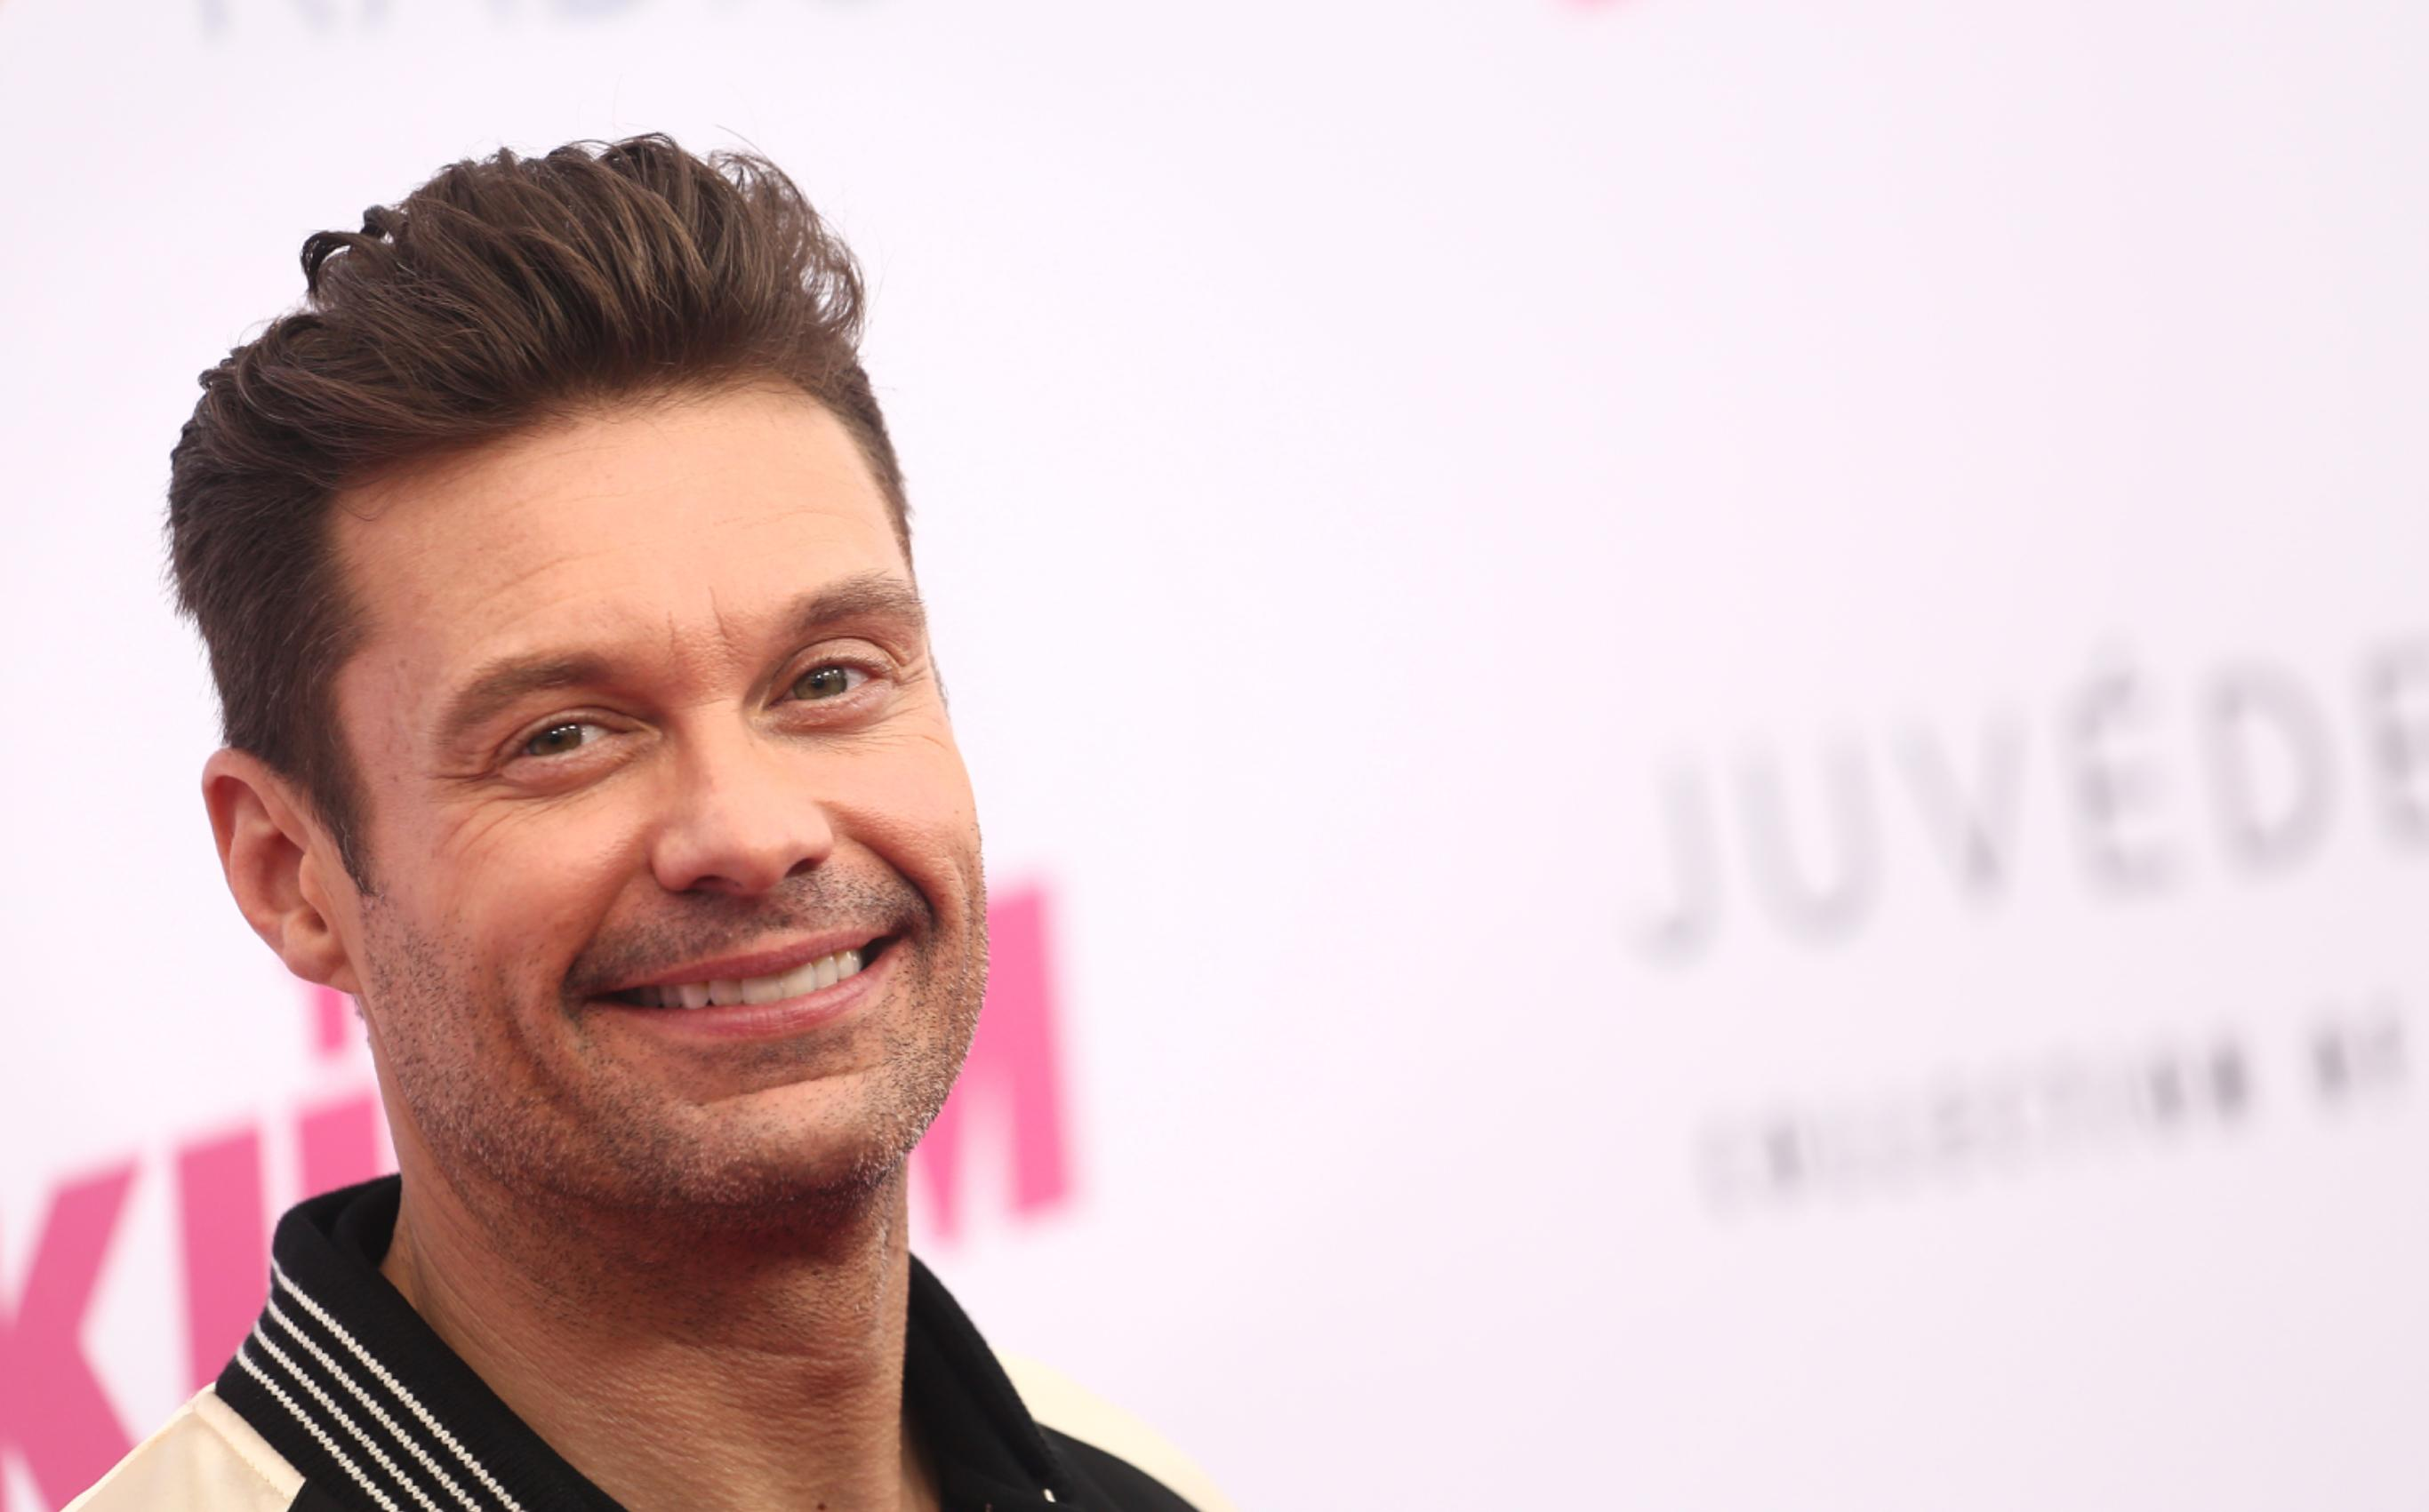 23 What Happened to Ryan Seacrest's Eye Some Think It Might Be a Stroke